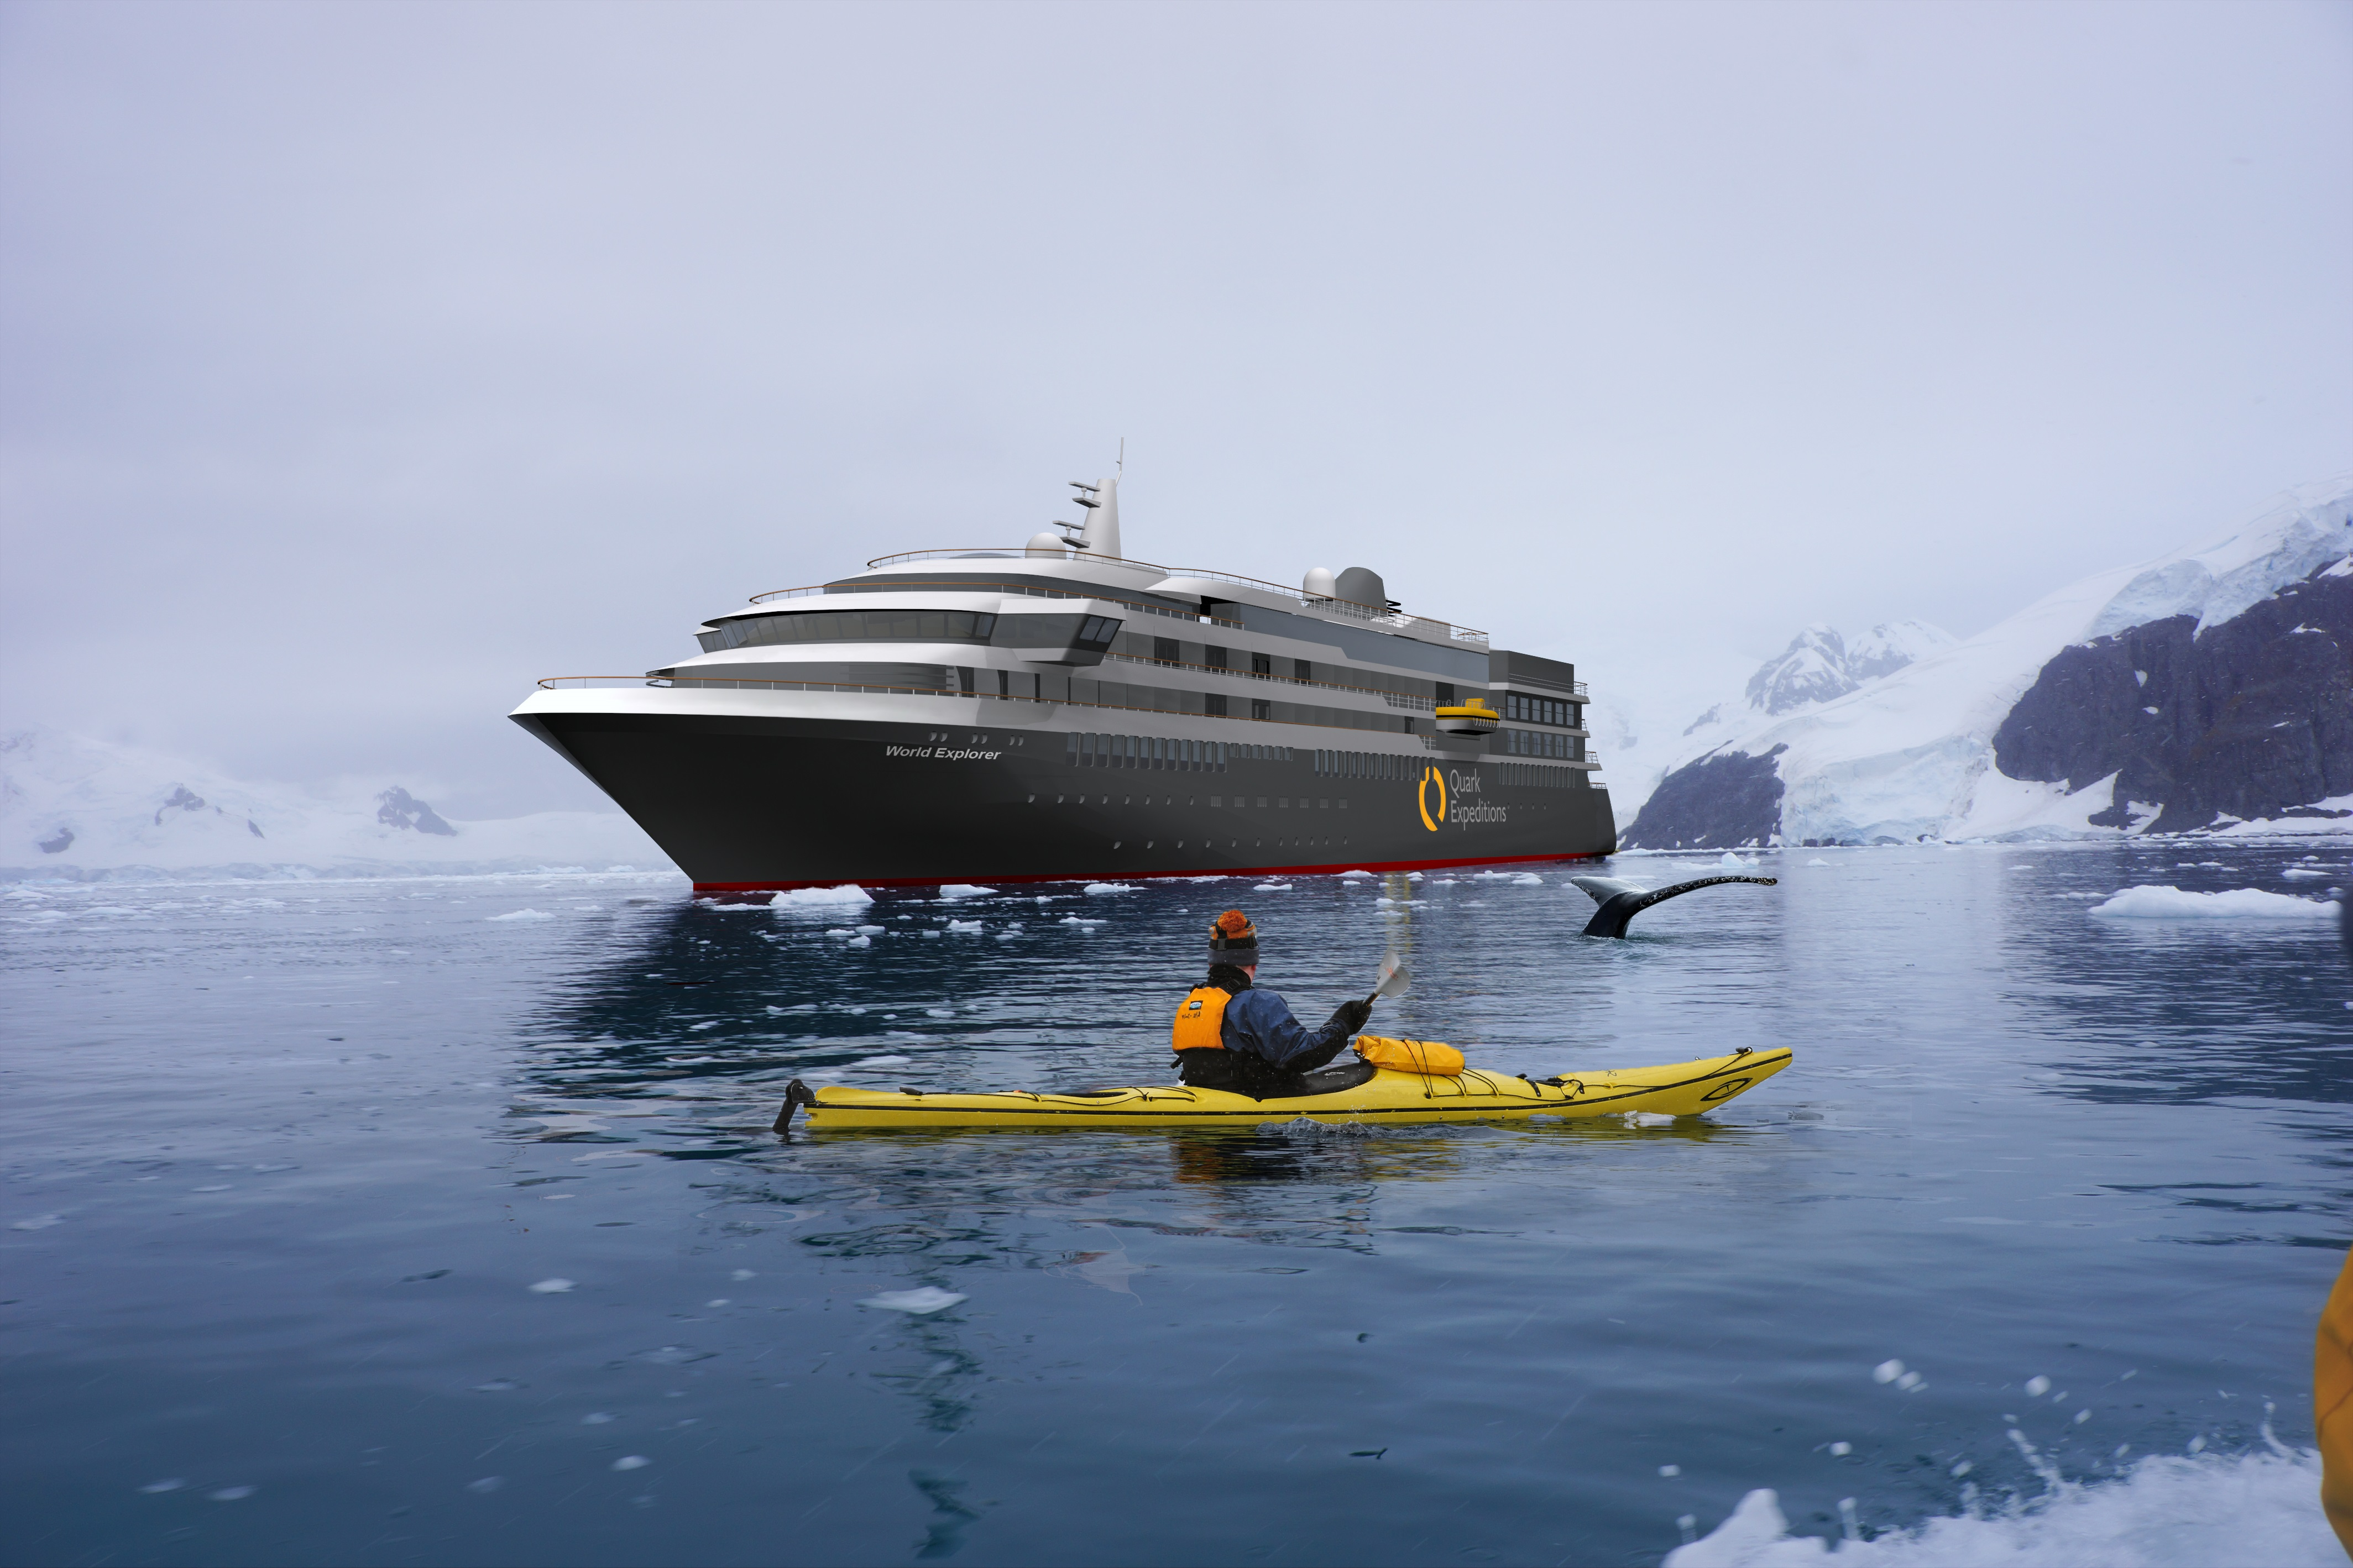 Quark Expeditions Announces Its First Hybrid Luxury